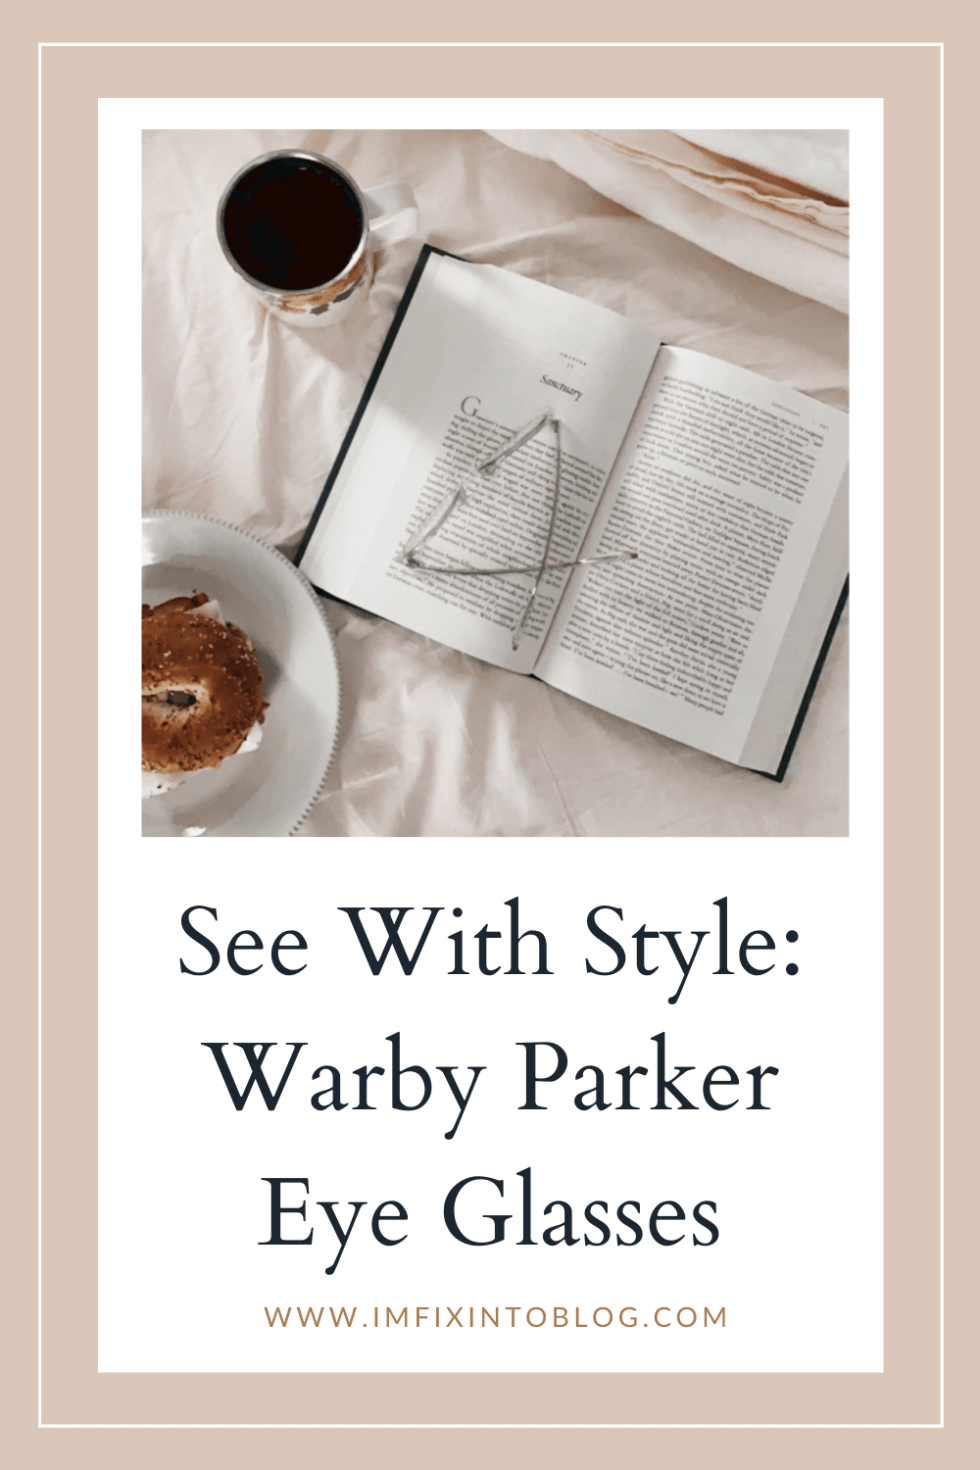 See With Style: Warby Parker Eye Glasses - I'm Fixin' To - @imfixintoblog |Warby Parker Eye Glasses by popular NC fashion blog, I'm Fixin' To: Pinterest image of a pair of Warby Parker glasses resting on top of an open book.